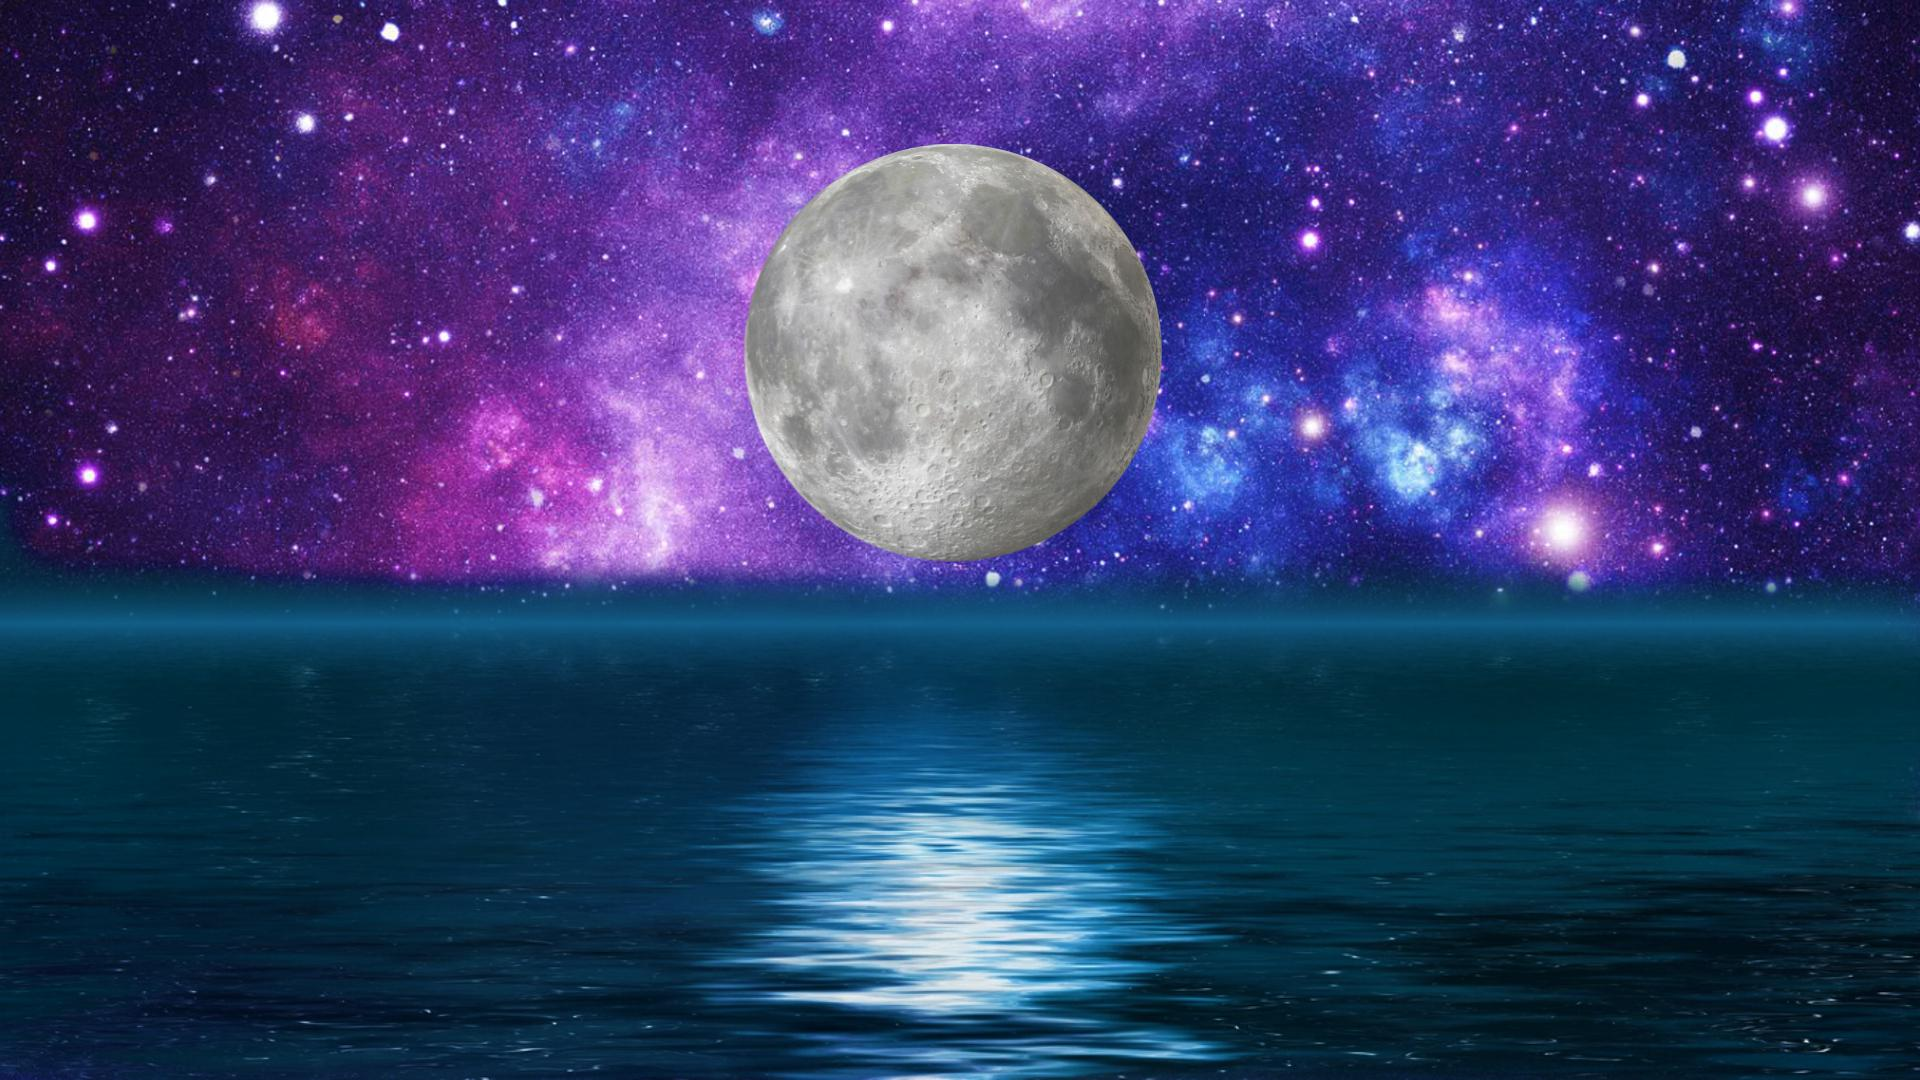 Moon over water   124308   High Quality and Resolution Wallpapers 1920x1080